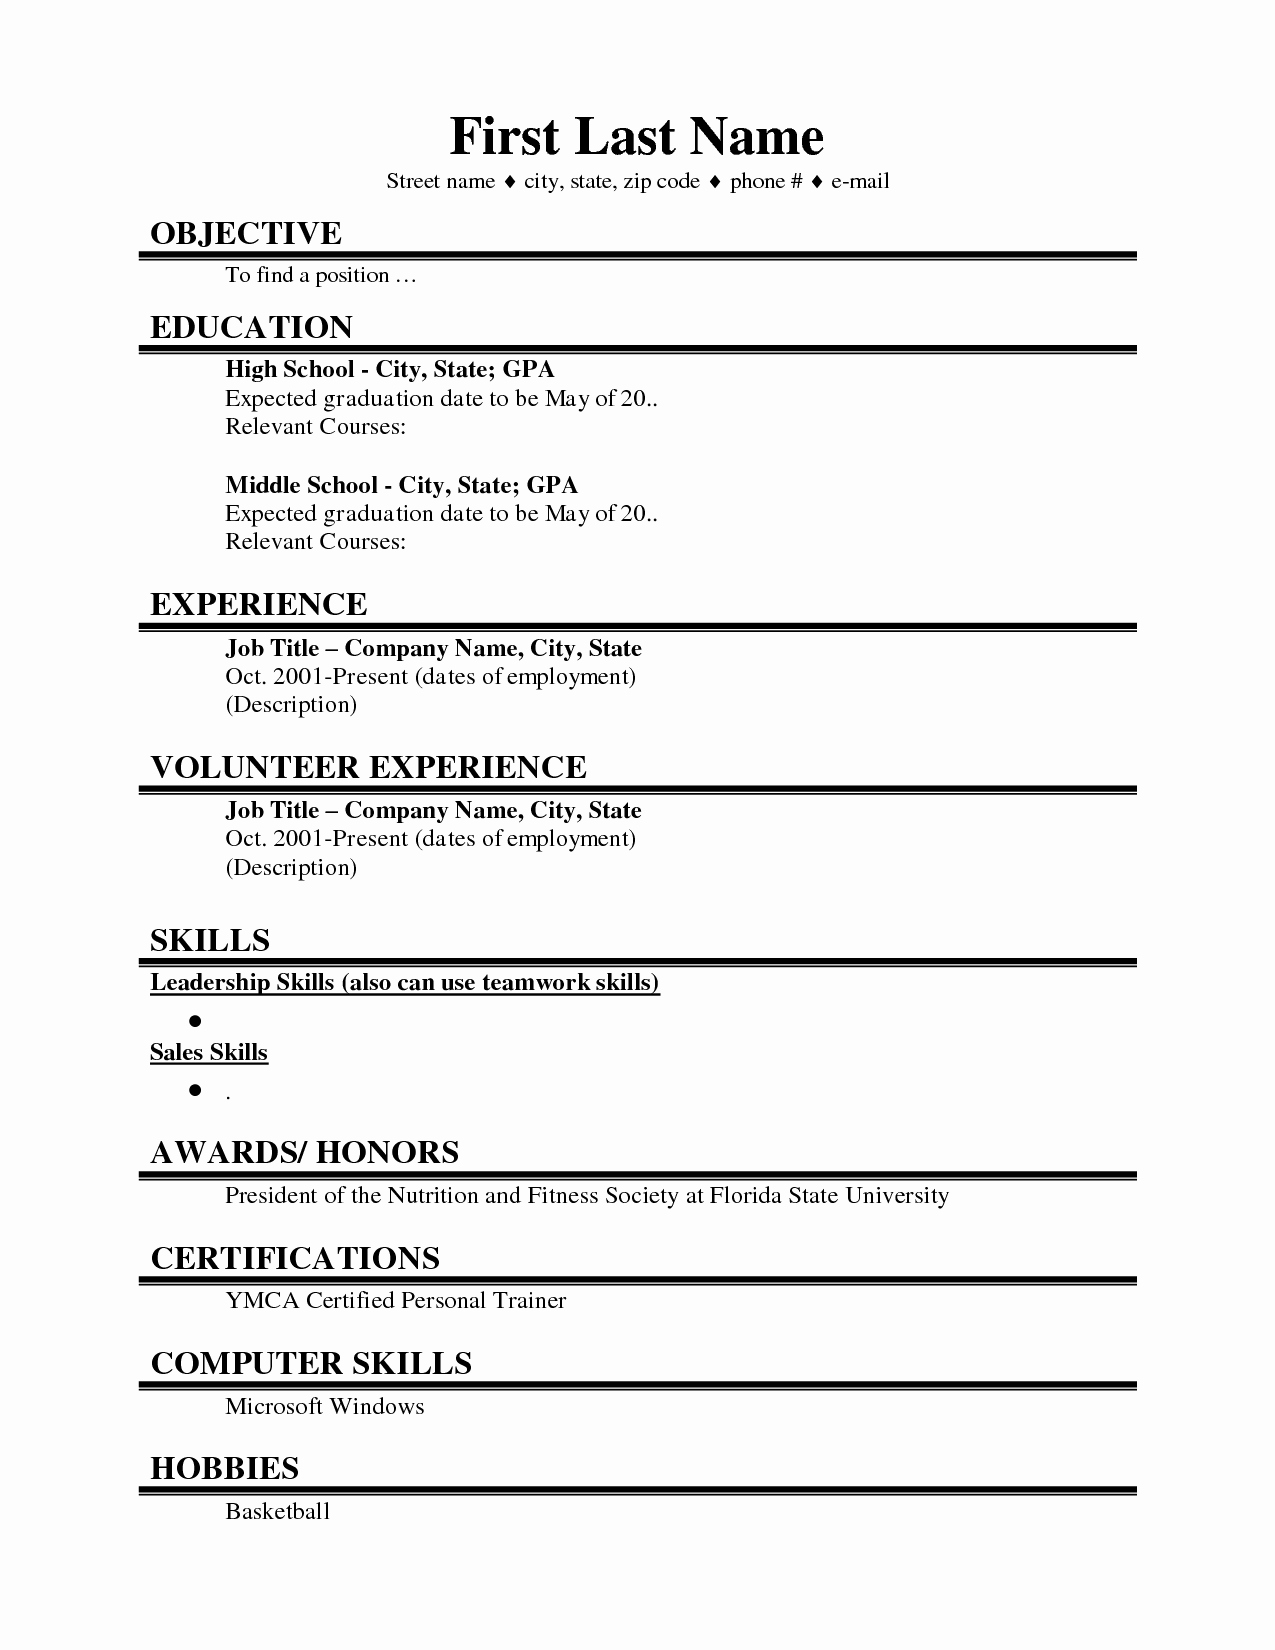 College Freshman Resume Template Inspirational College Student Resume Template Microsoft Word